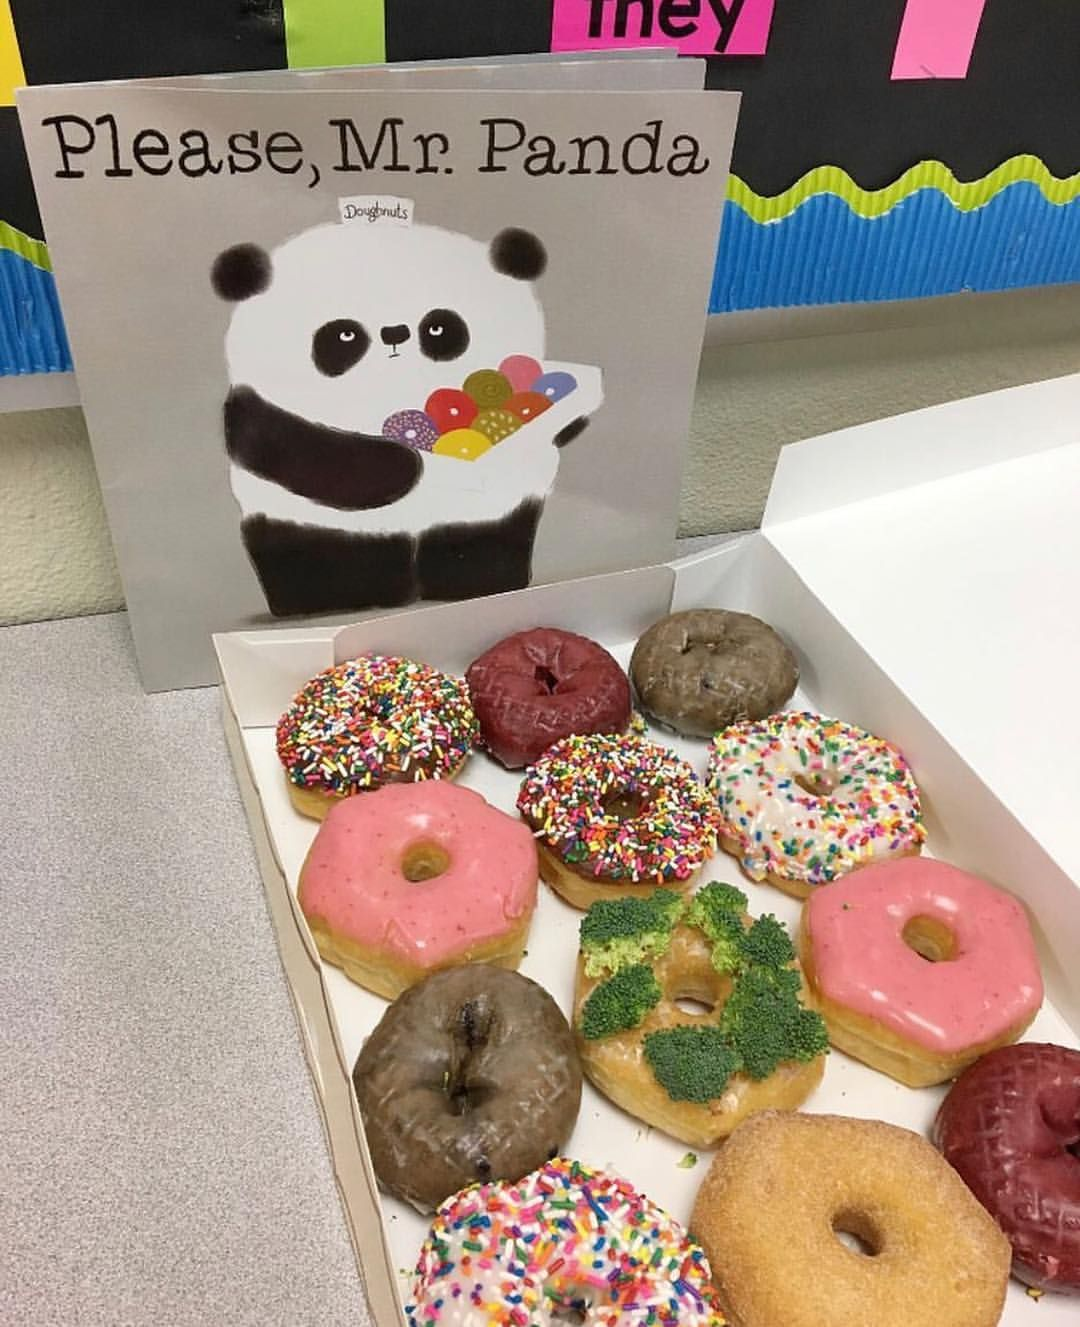 Practicing Declining Requests With Your Class Using